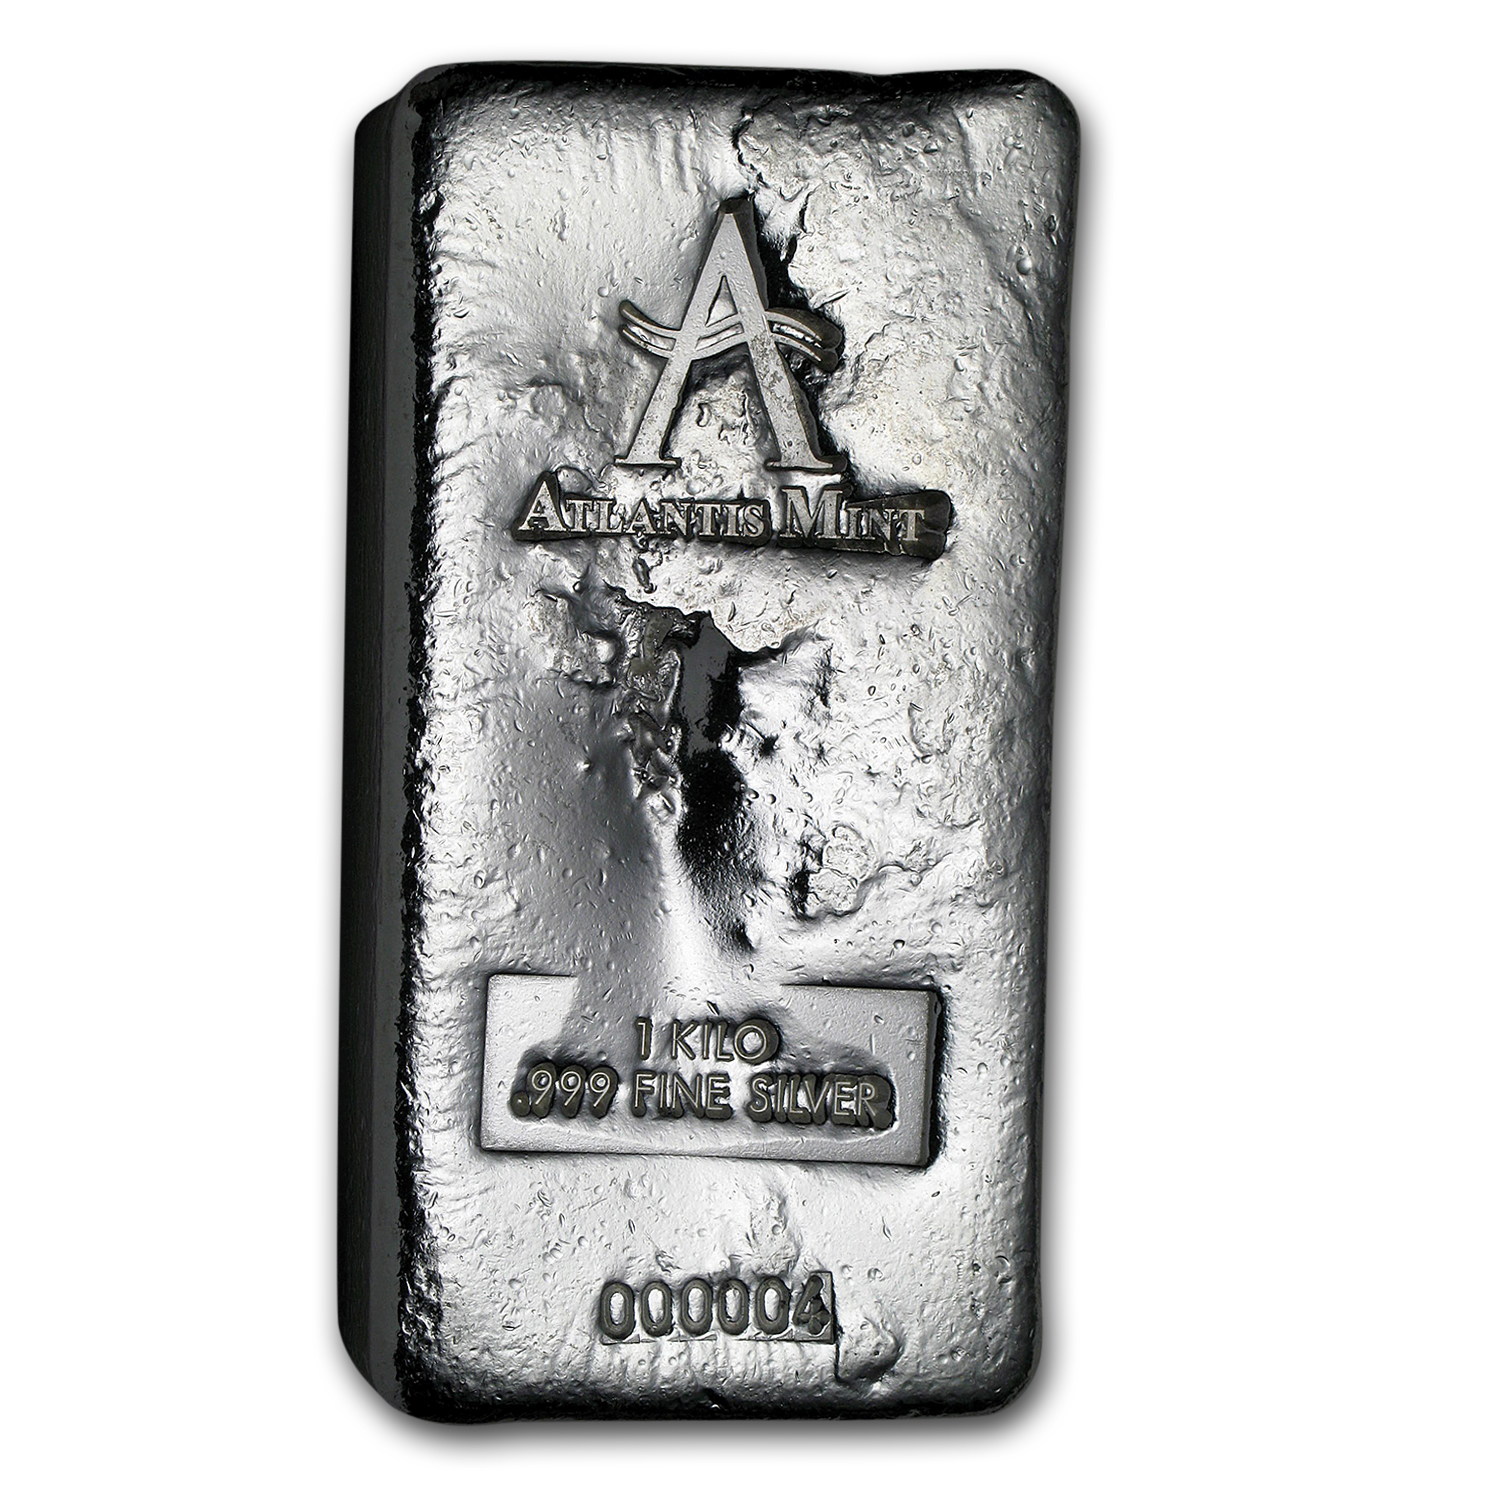 1 kilo Silver Bar - Atlantis Mint (Poured, w/Serial #)